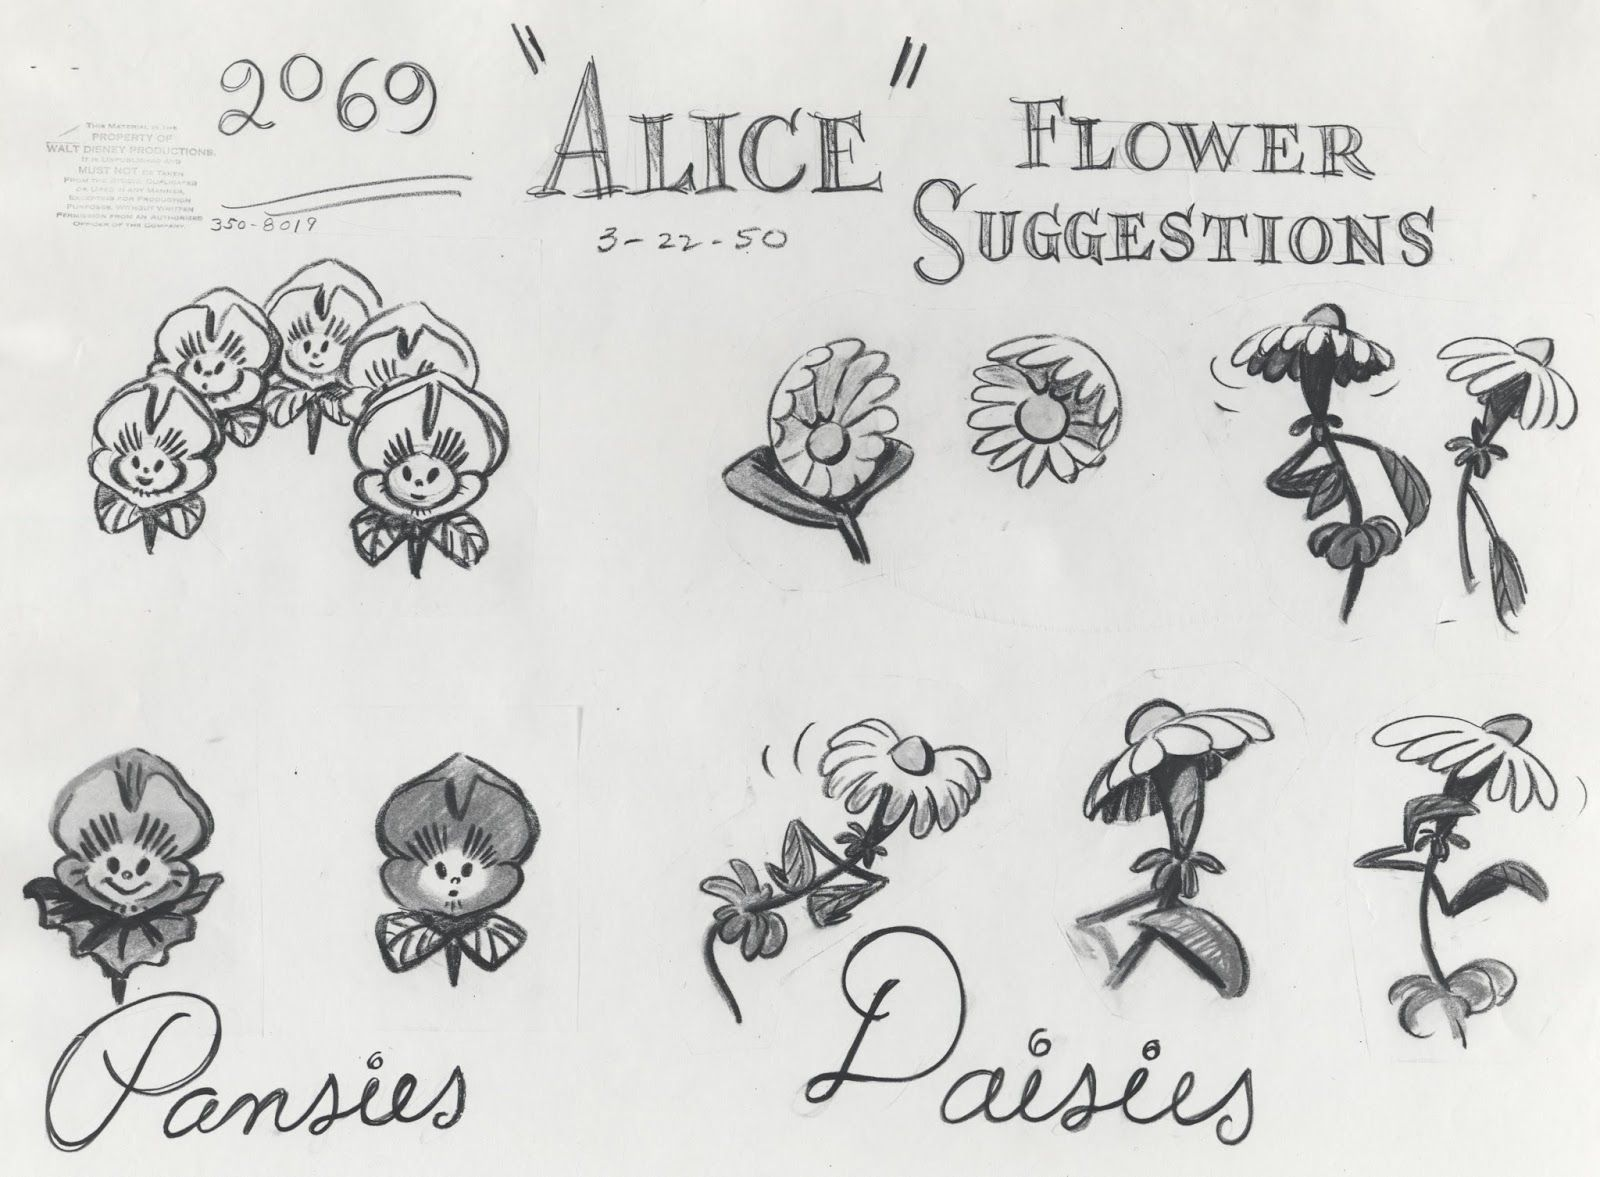 The Flowers In Disney 39 S Alice In Wonderland Have Attitude Issues Friendly At Firs Alice And Wonderland Tattoos Alice In Wonderland Drawings Disney Tattoos